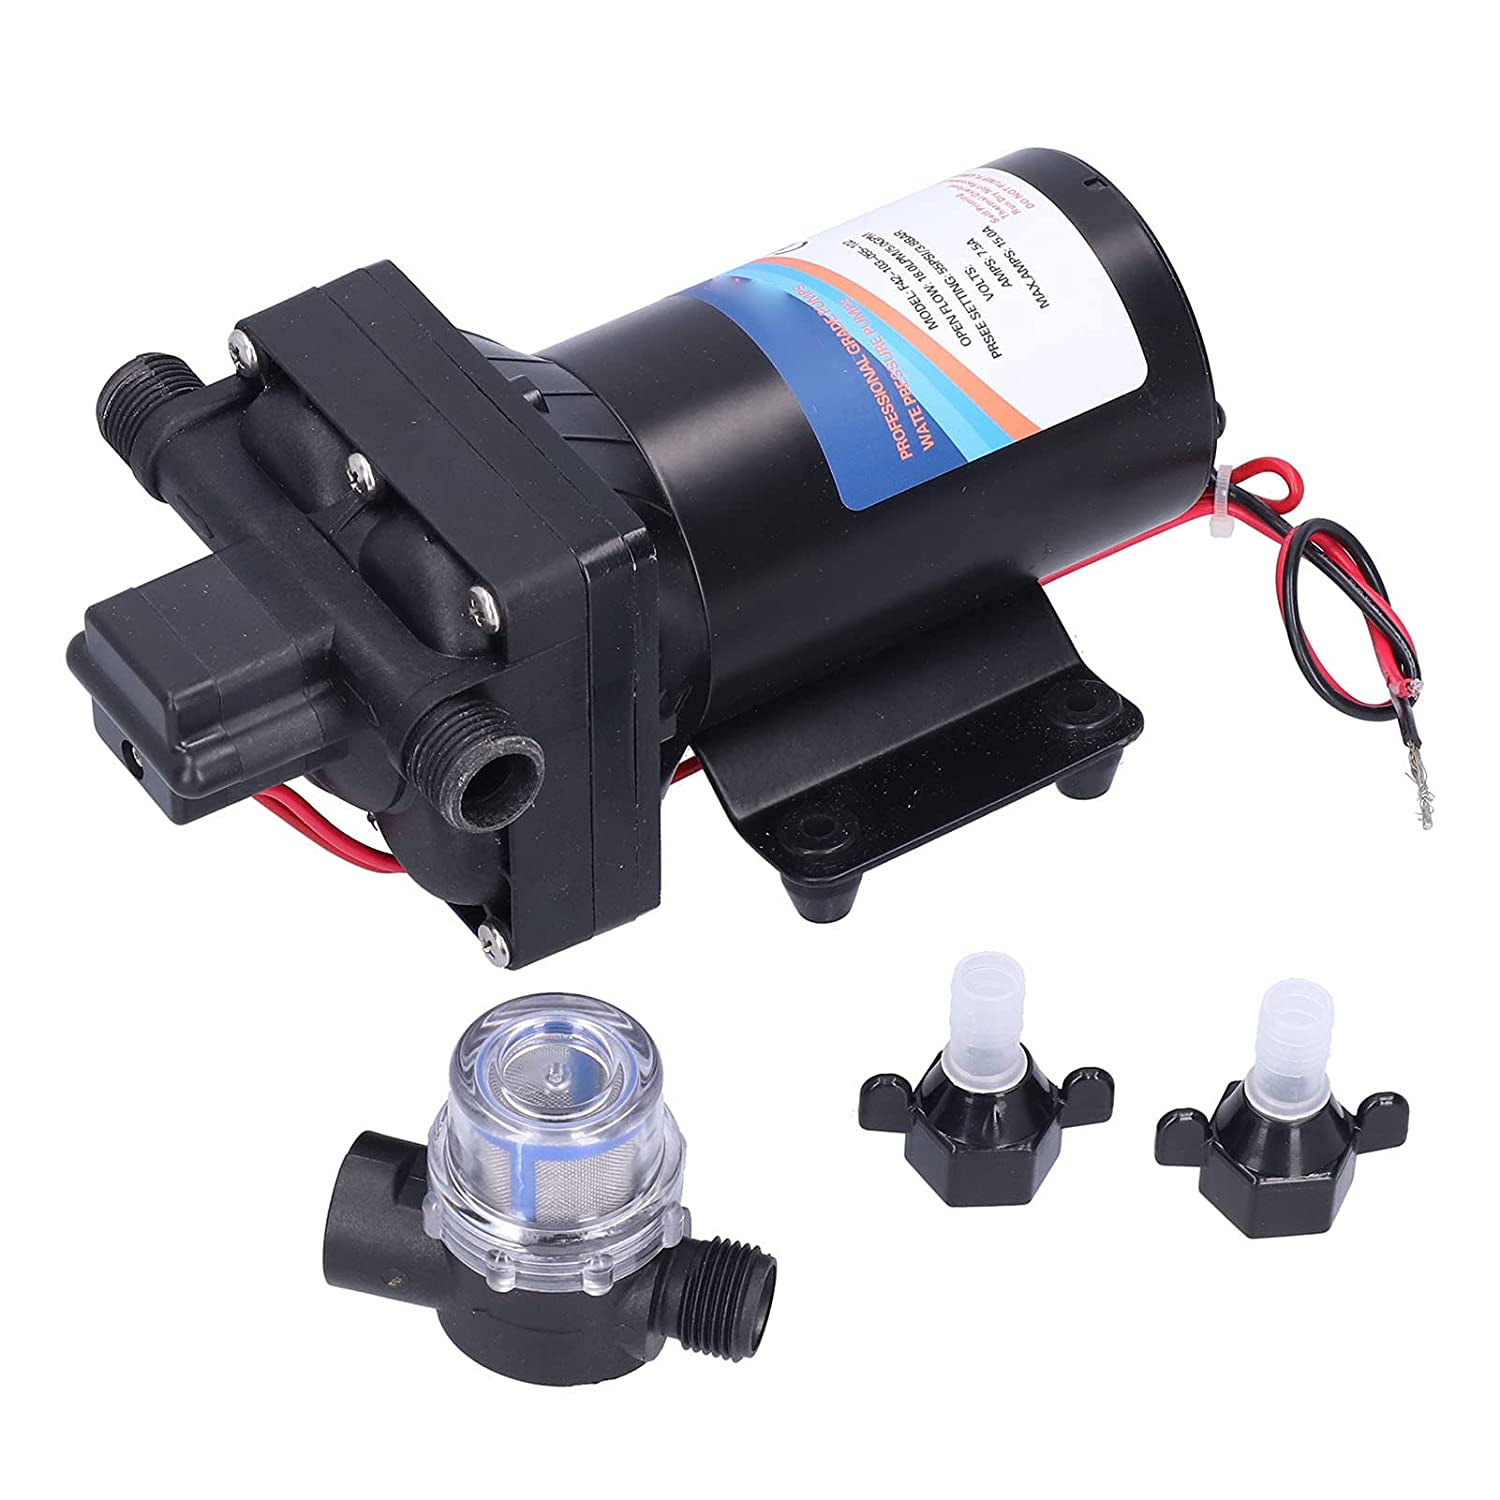 Fafeicy Diaphragm Pump DC At the price of surprise High Supercharg Priming Pressure Self Dealing full price reduction